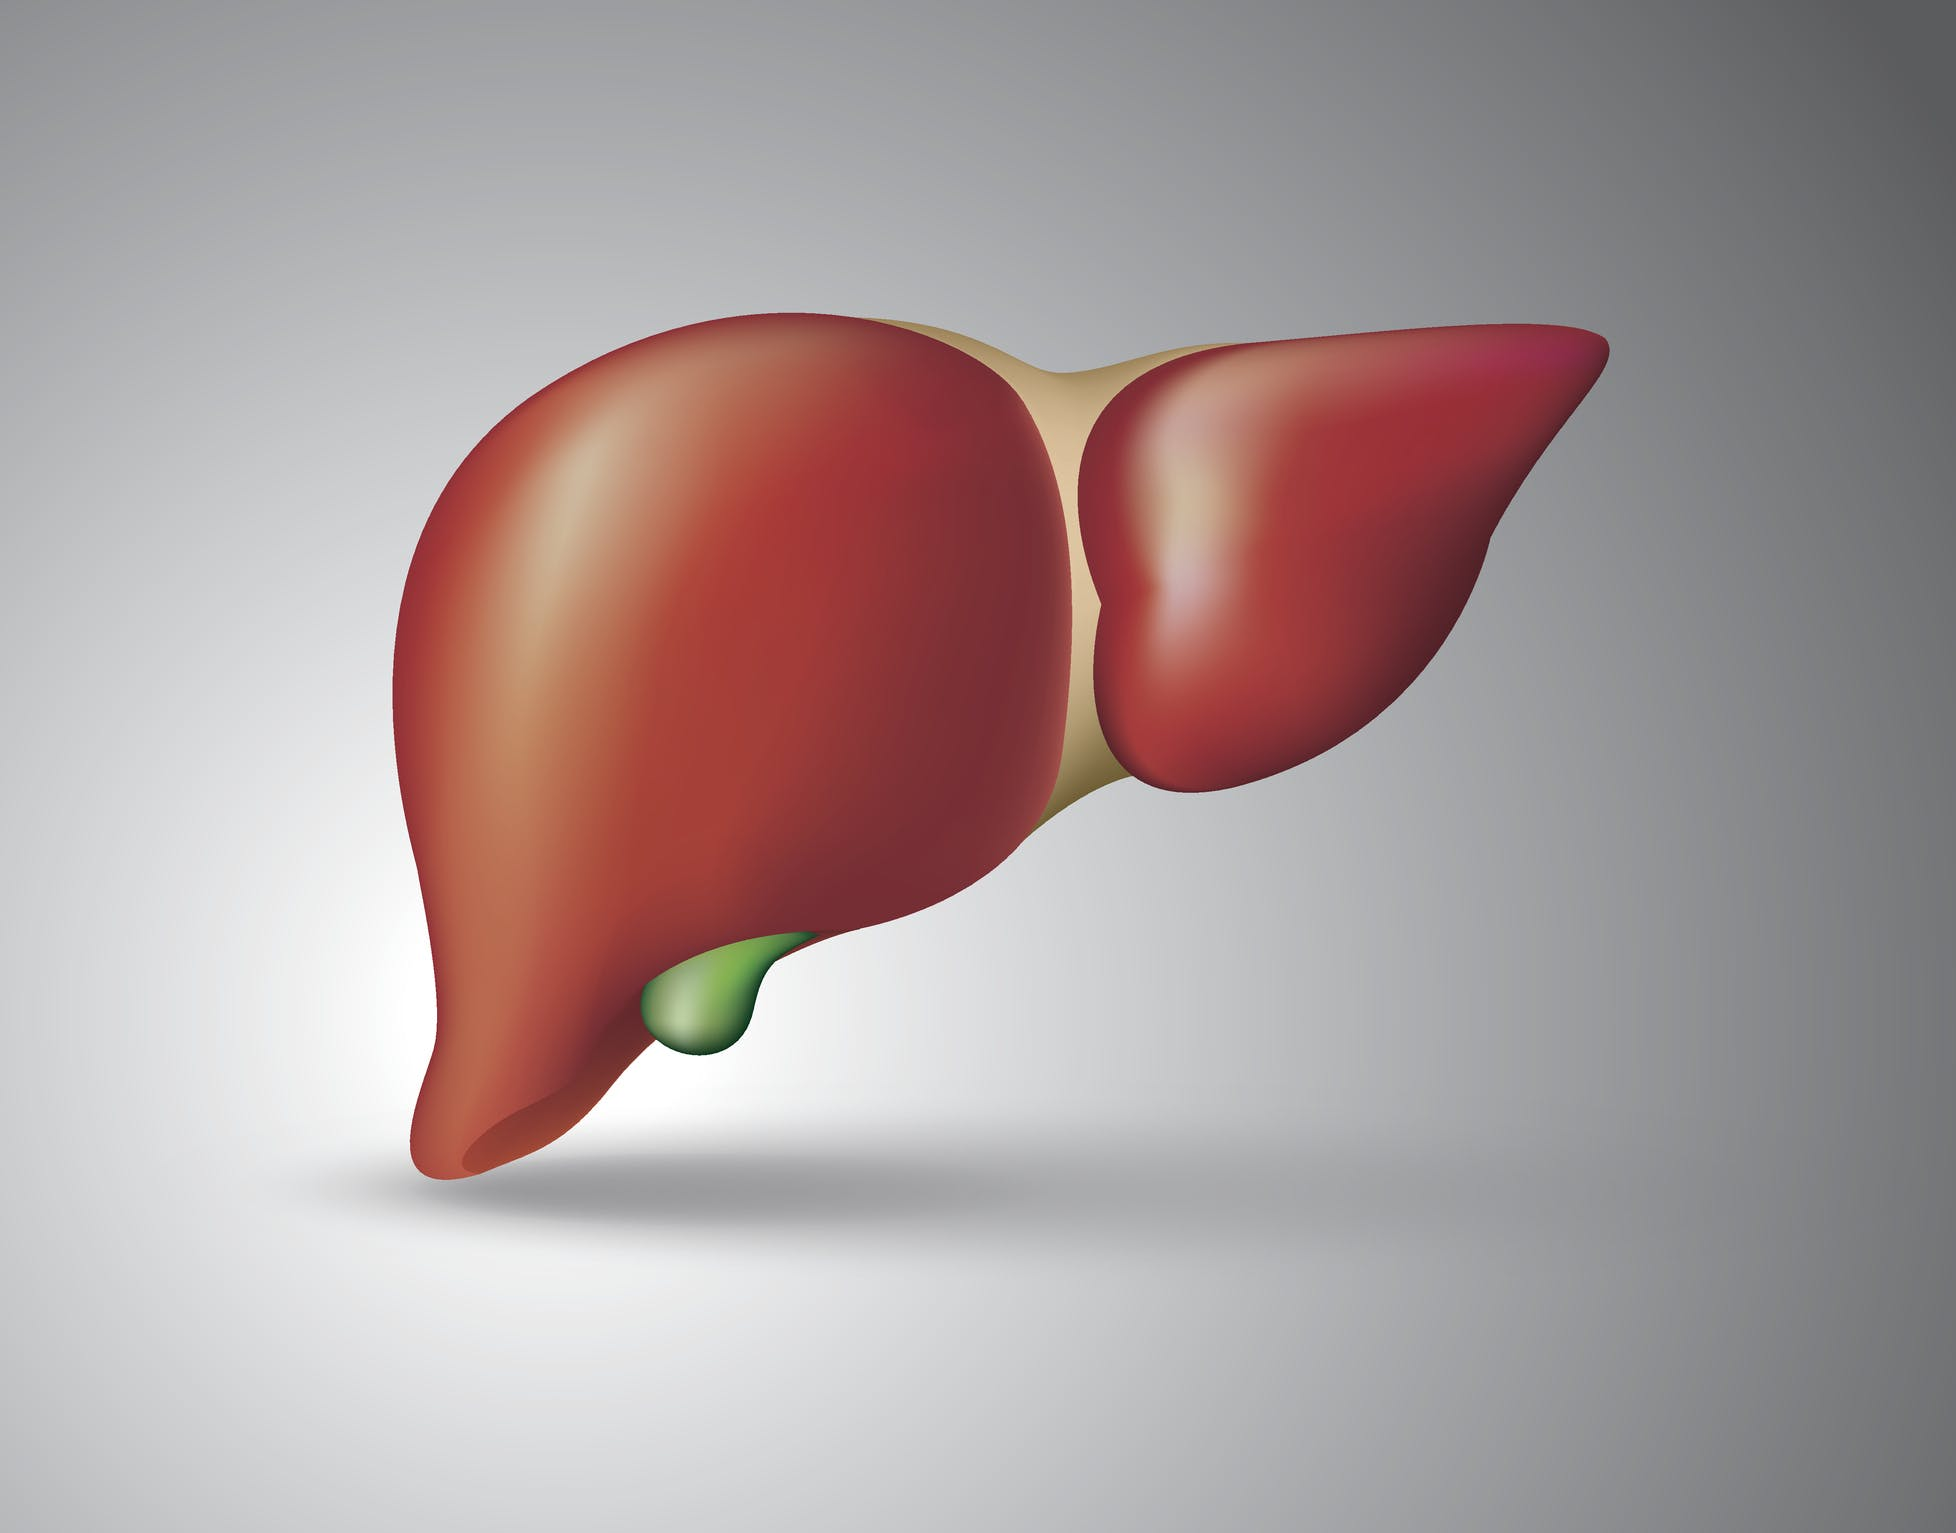 US experts raise red flag over fatty liver disease